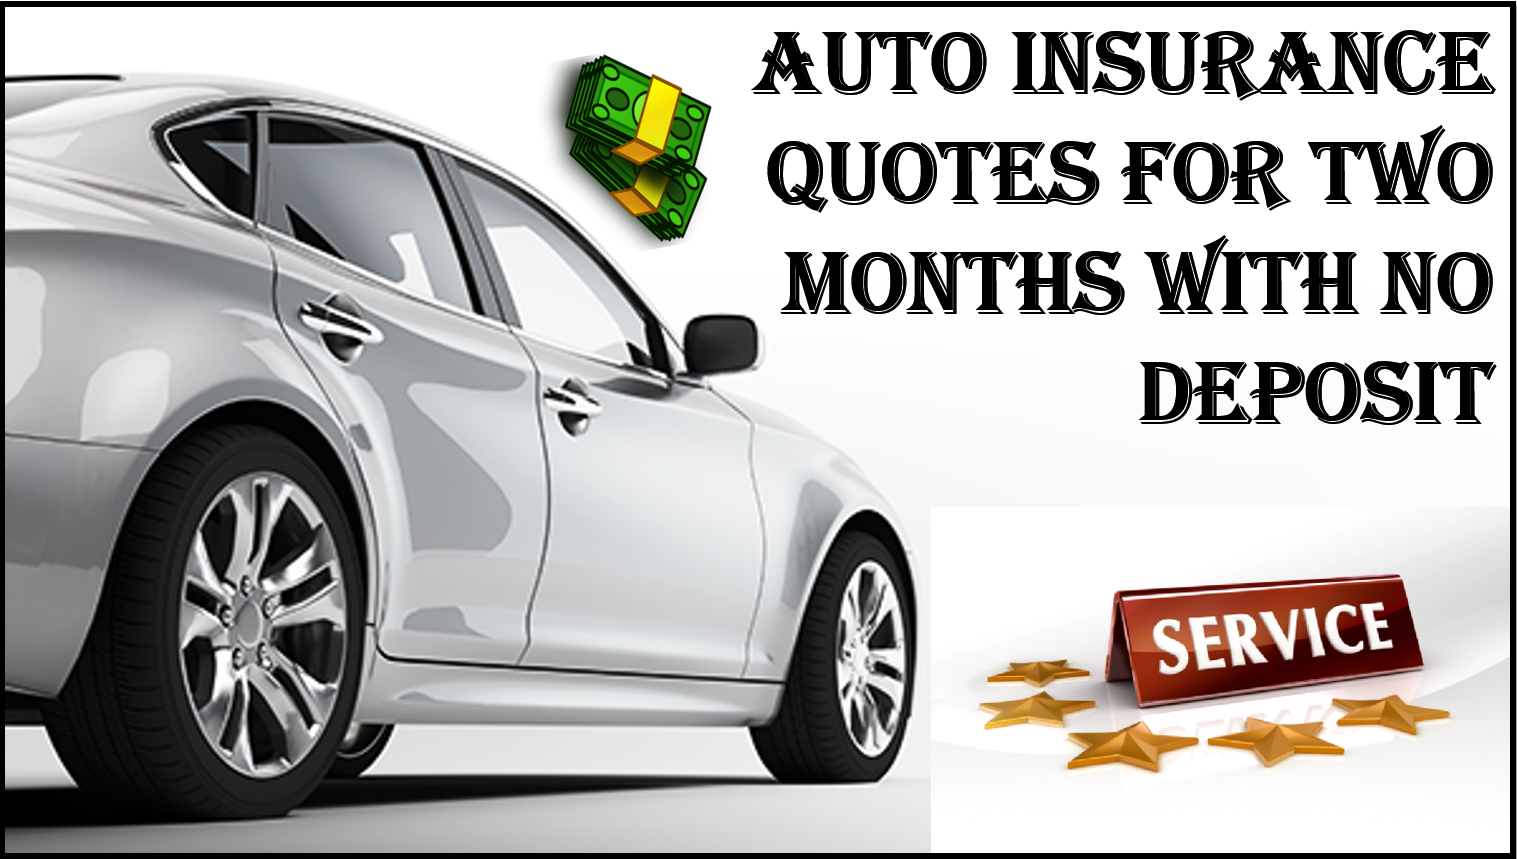 Get Help To Secure Cheap Auto Insurance For Two Months With No